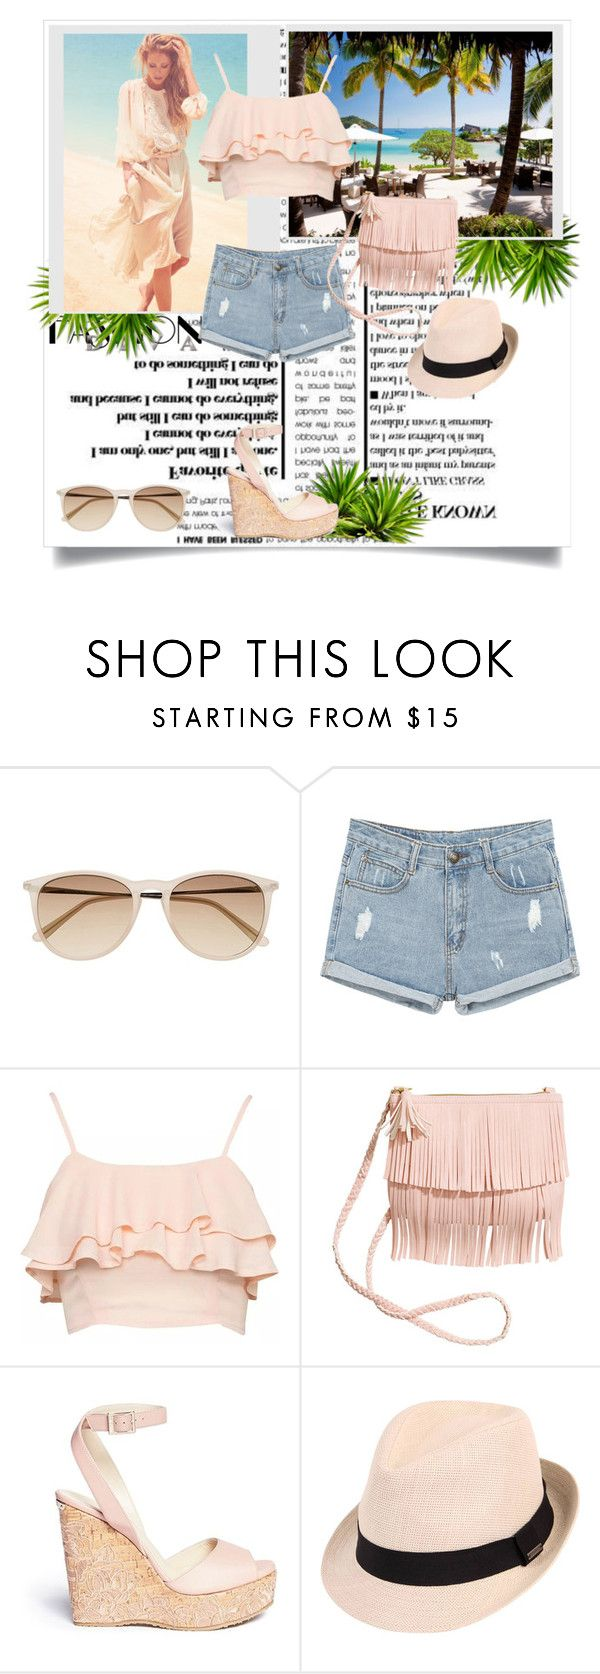 """""""Beach style"""" by ines98santos ❤ liked on Polyvore featuring Witchery and Jimmy Choo"""